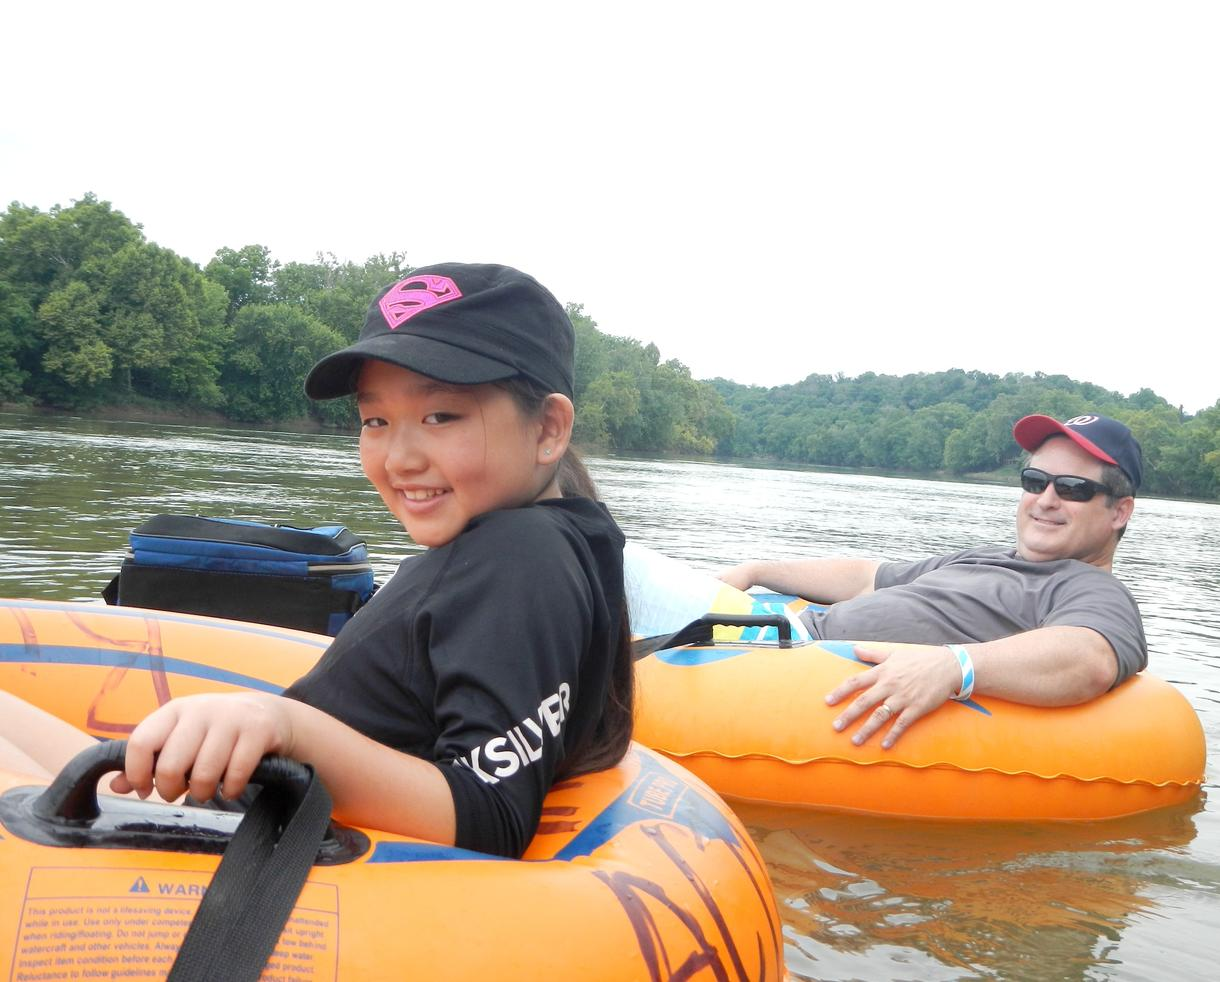 River Active at Watermelon Park Family River Tubing Adventure